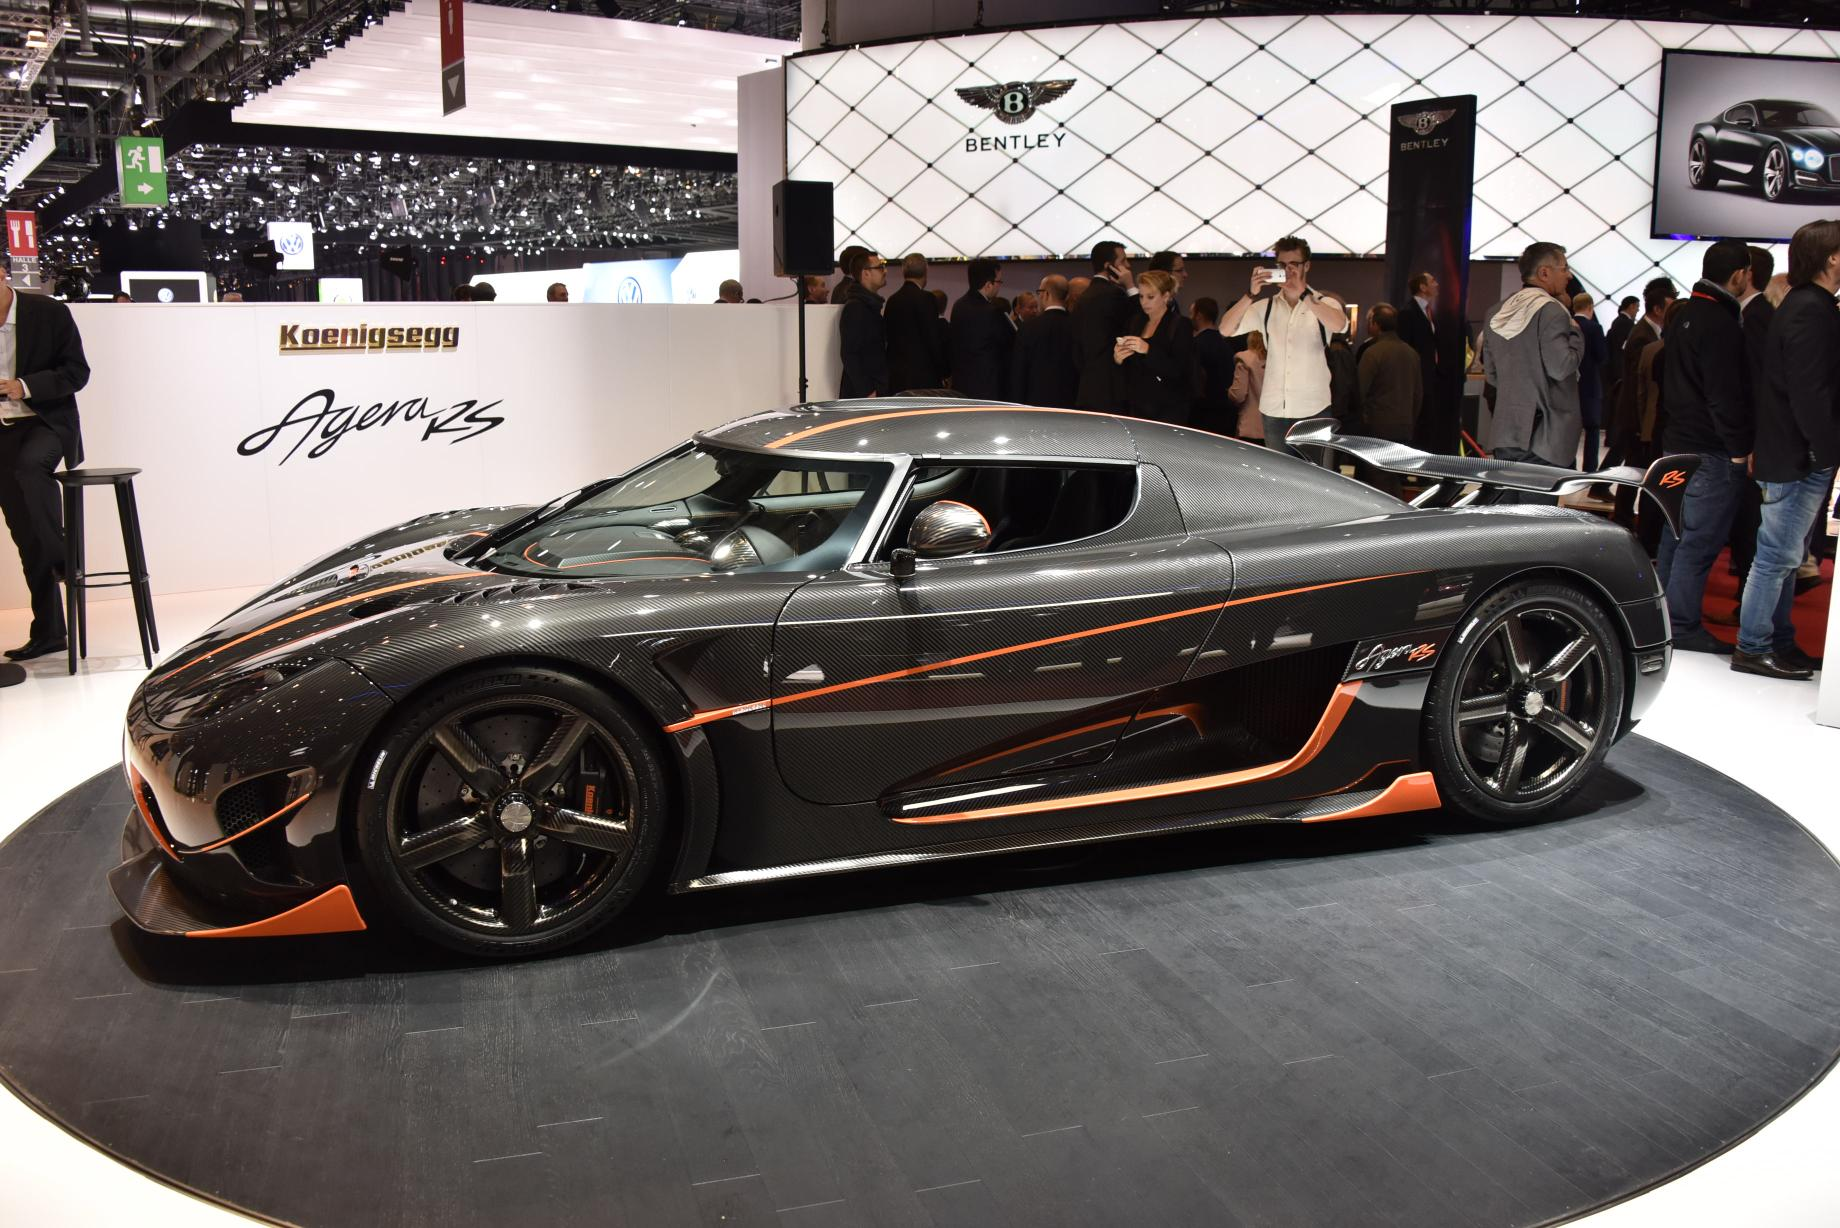 Top 7 Fastest Cars In The World - Koenigsegg Agera RS